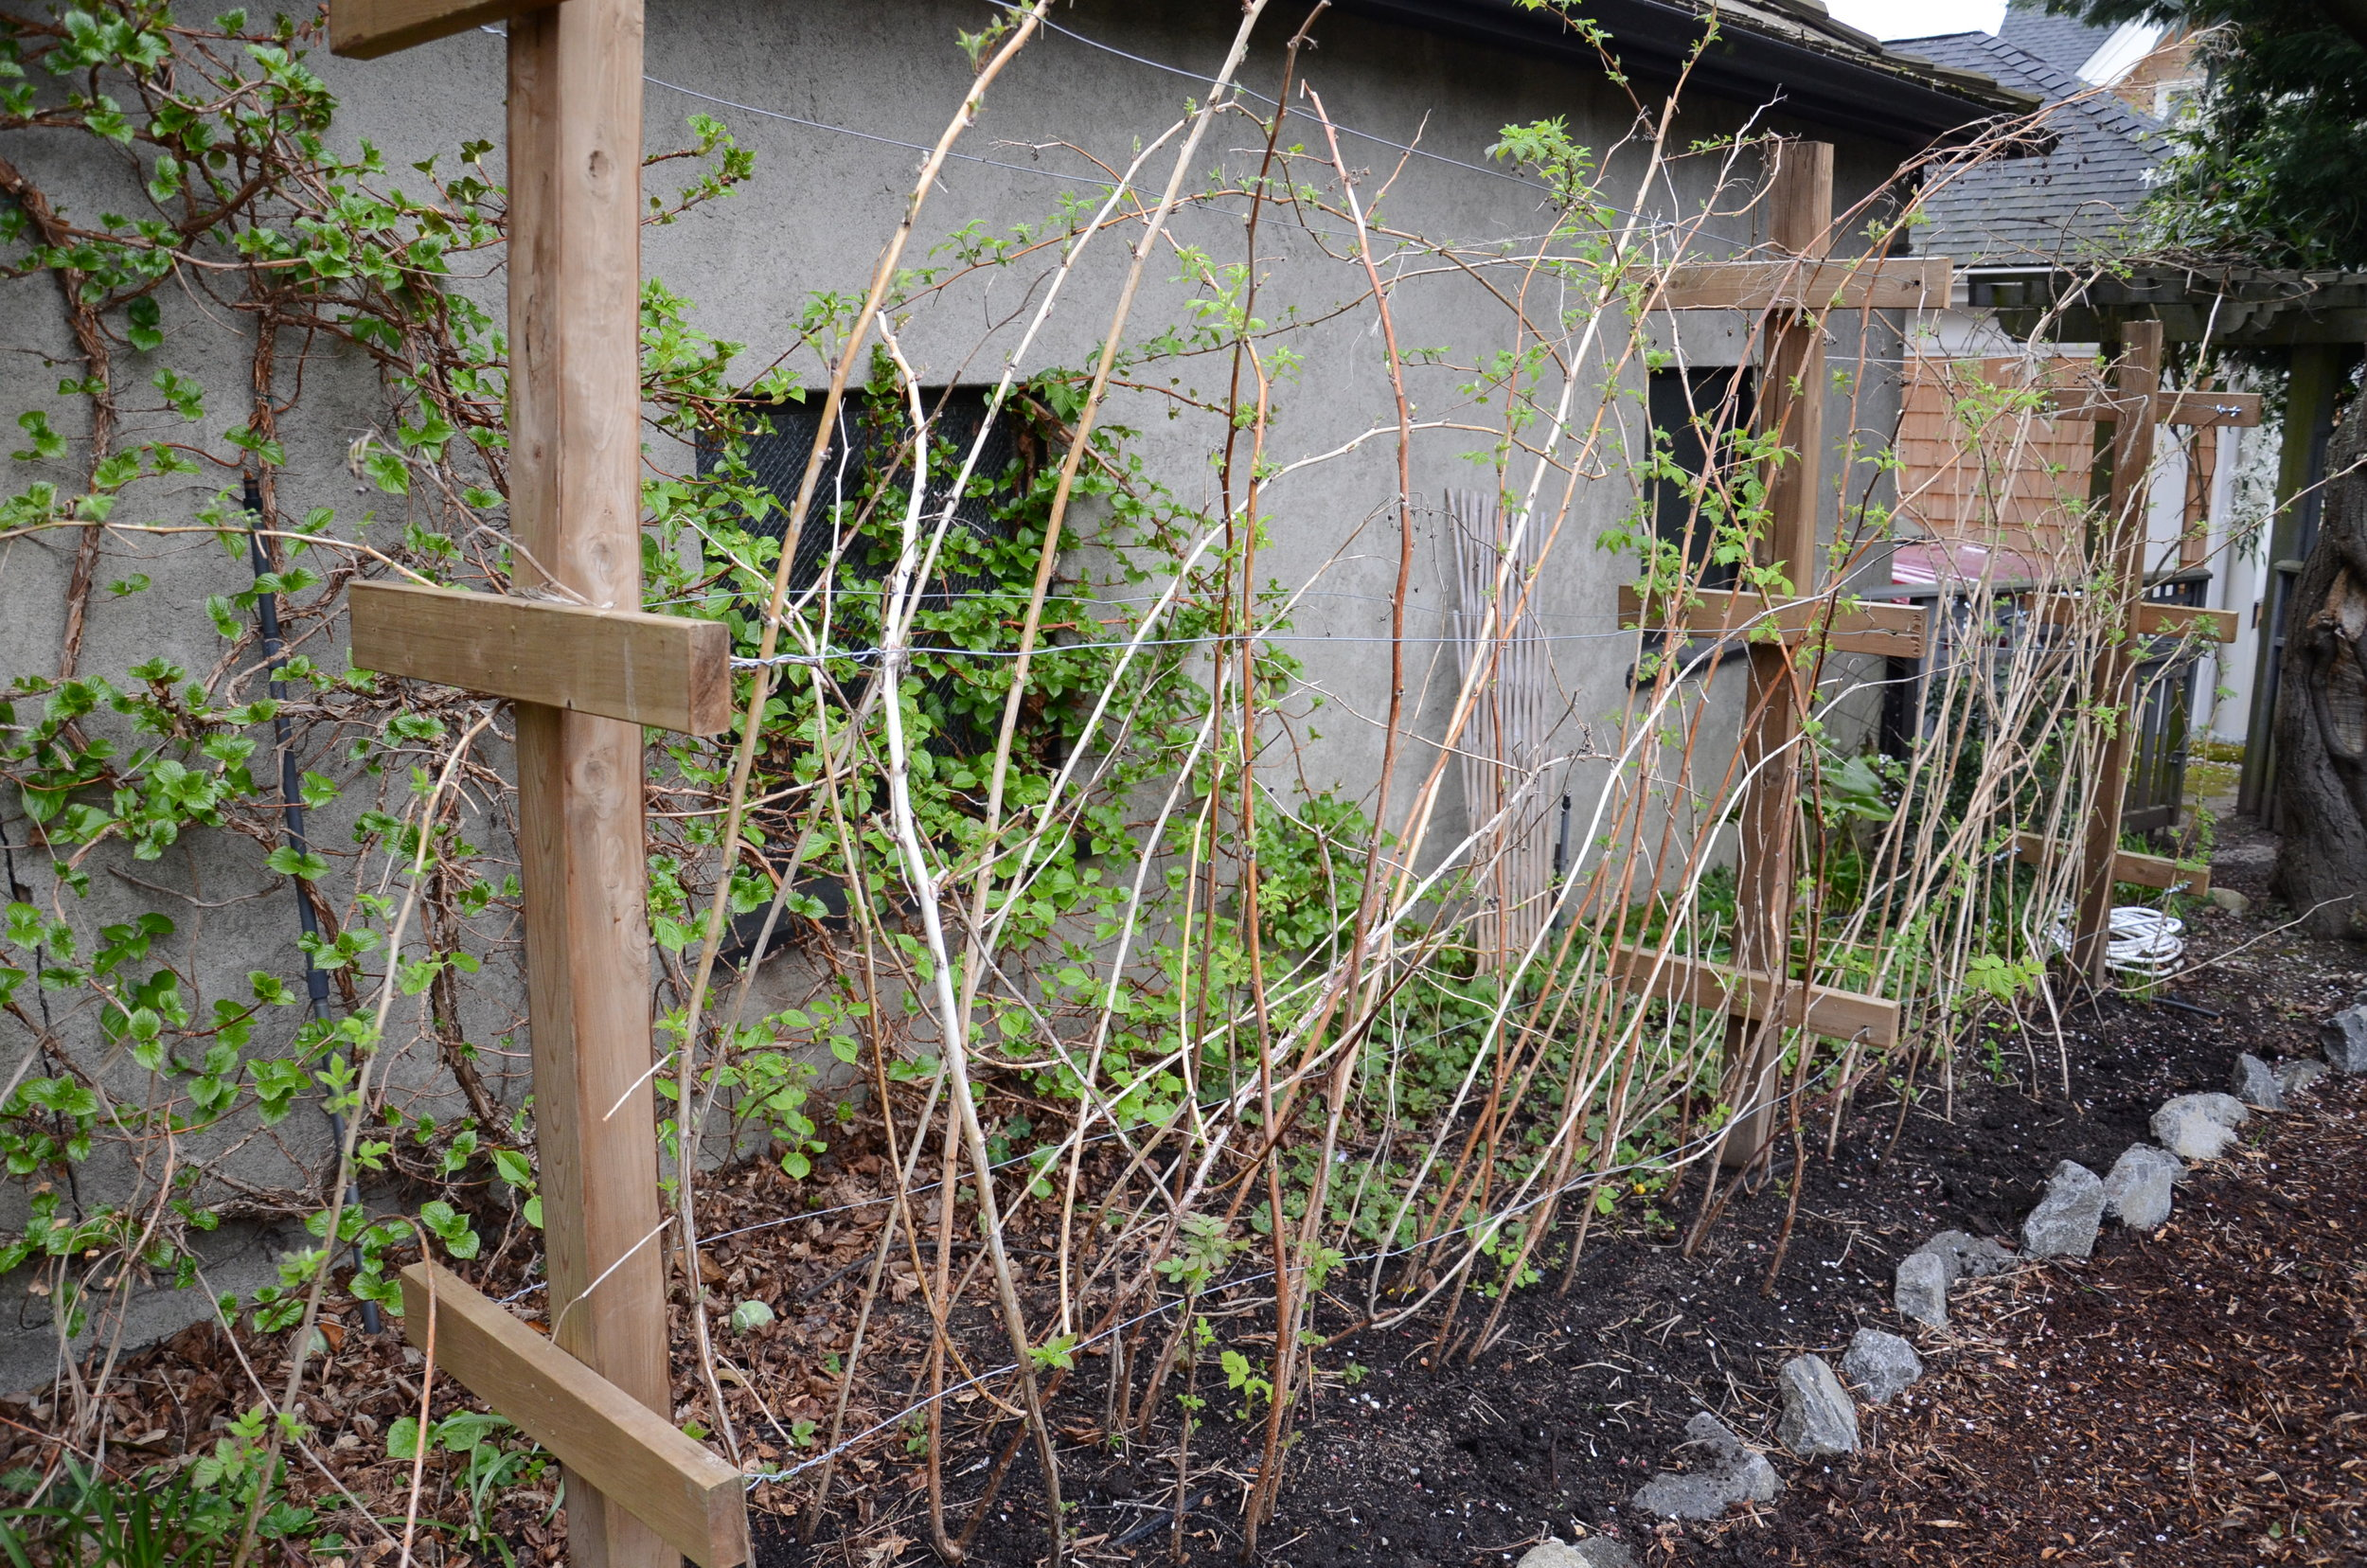 June bearing or Floricane raspberries pruned for winter